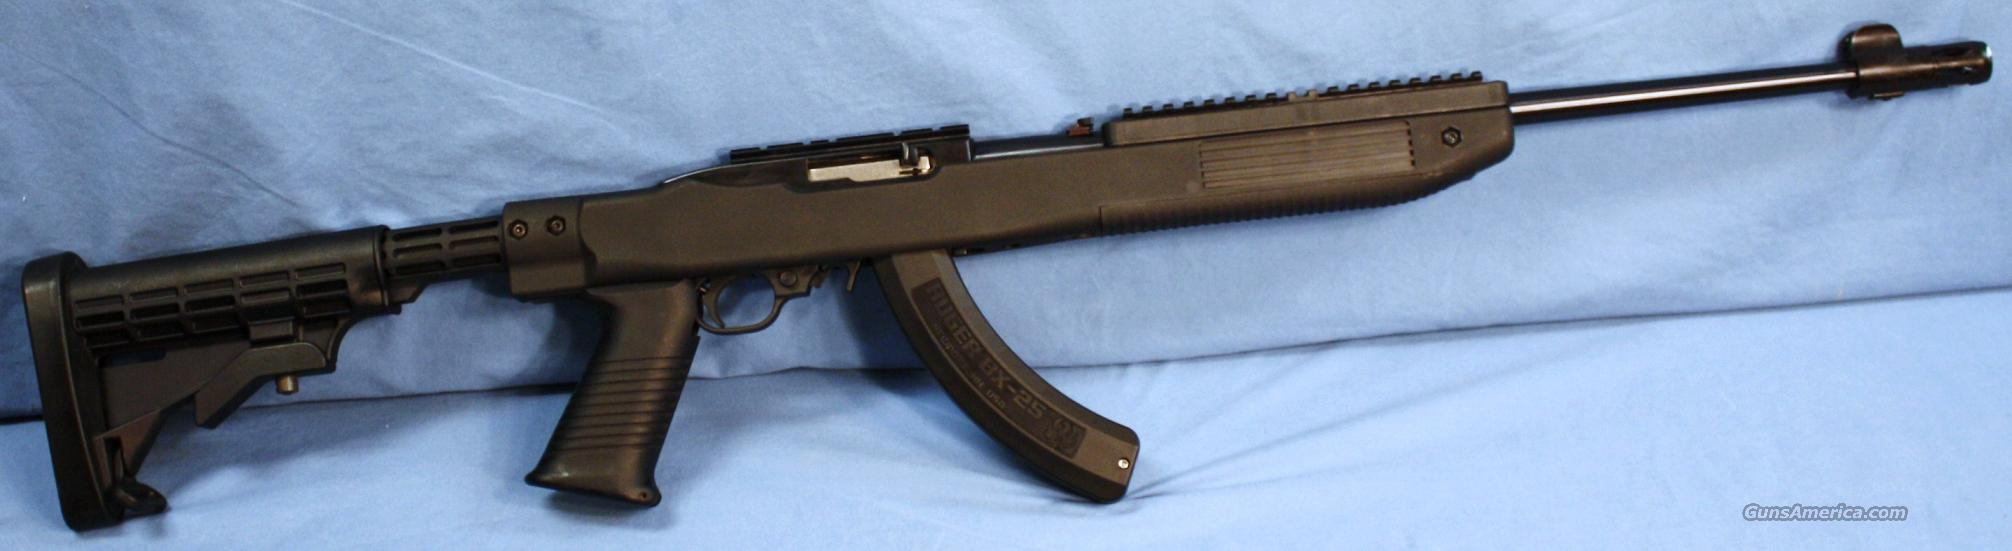 Ruger 10-22 Tactical Semi-Automatic Rifle .22 LR  Guns > Rifles > Ruger Rifles > 10-22